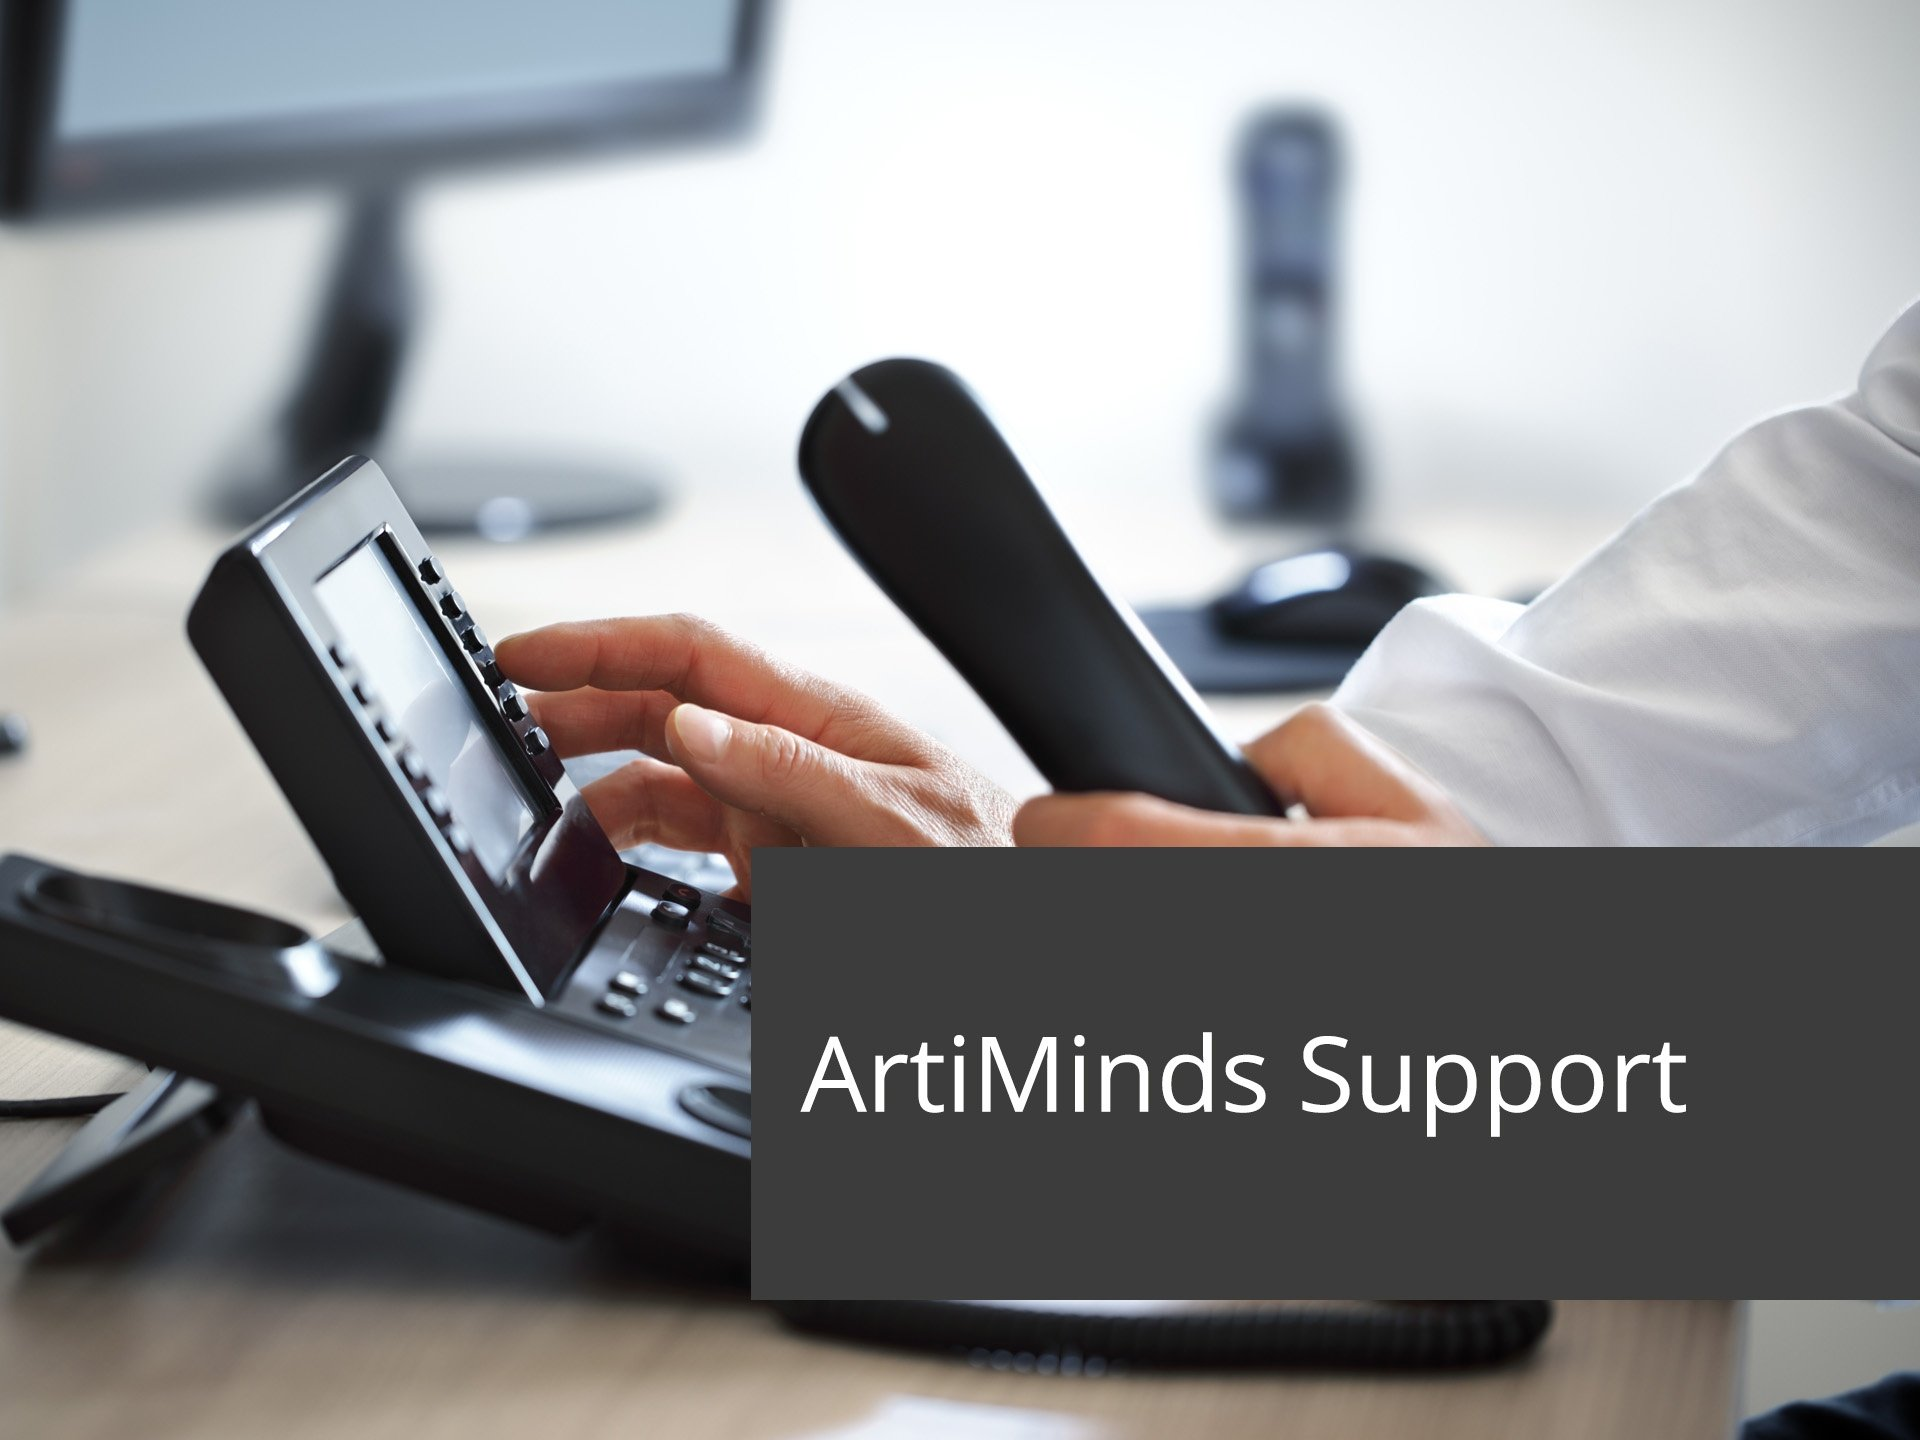 ArtiMinds-Robotics - The ArtiMinds support team is at your side.